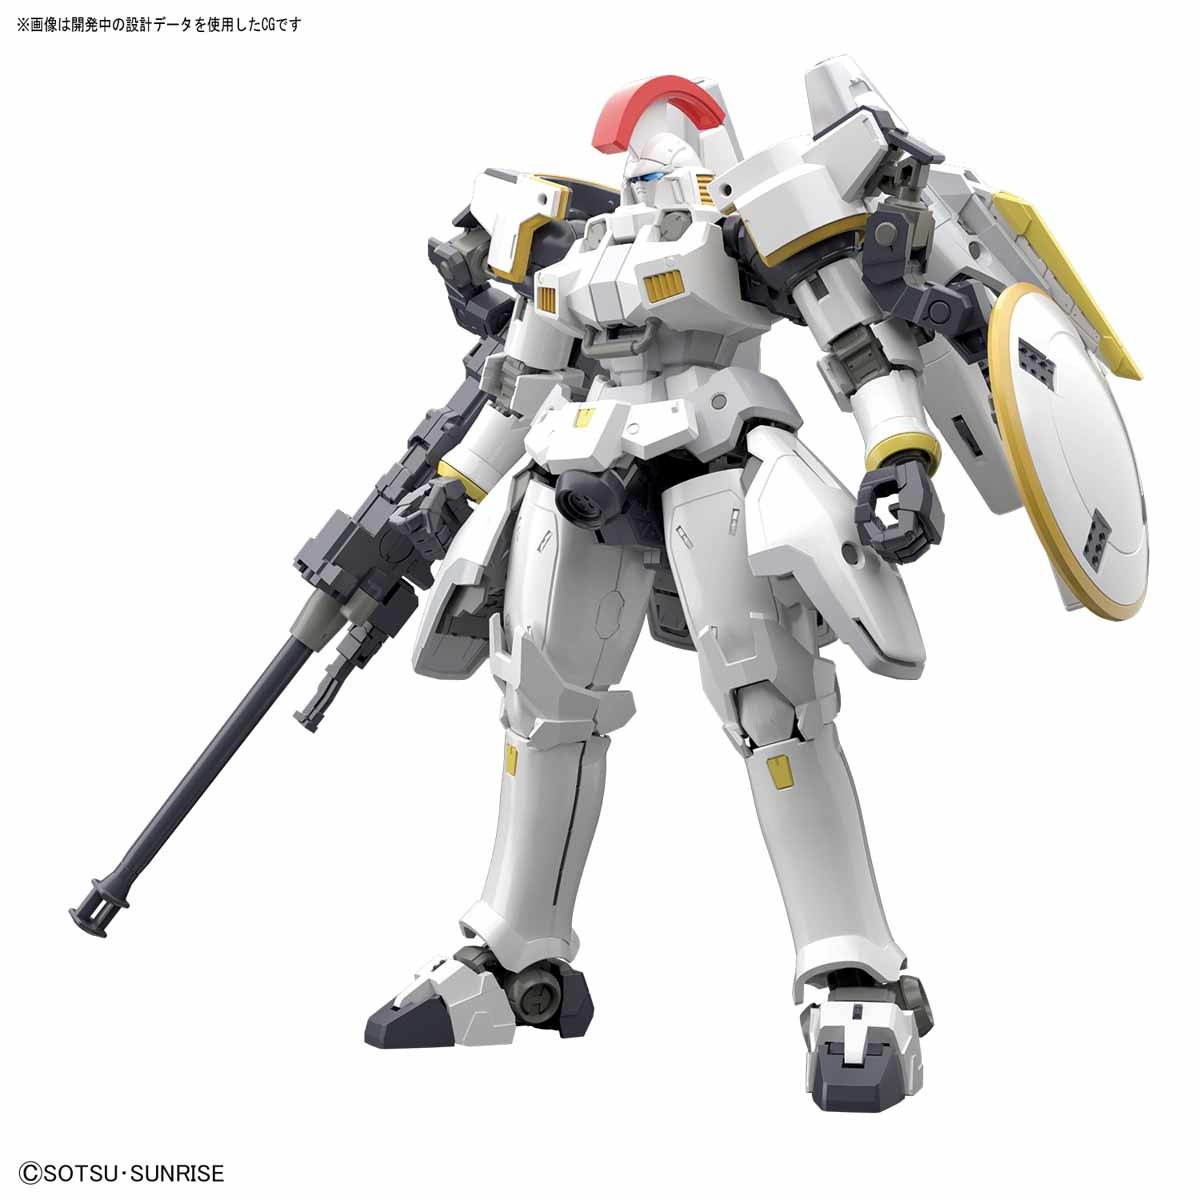 RG 1/144 OZ-00MS TALLGEESE EW: Many Big Size Official Images, Info Release   GUNJAP